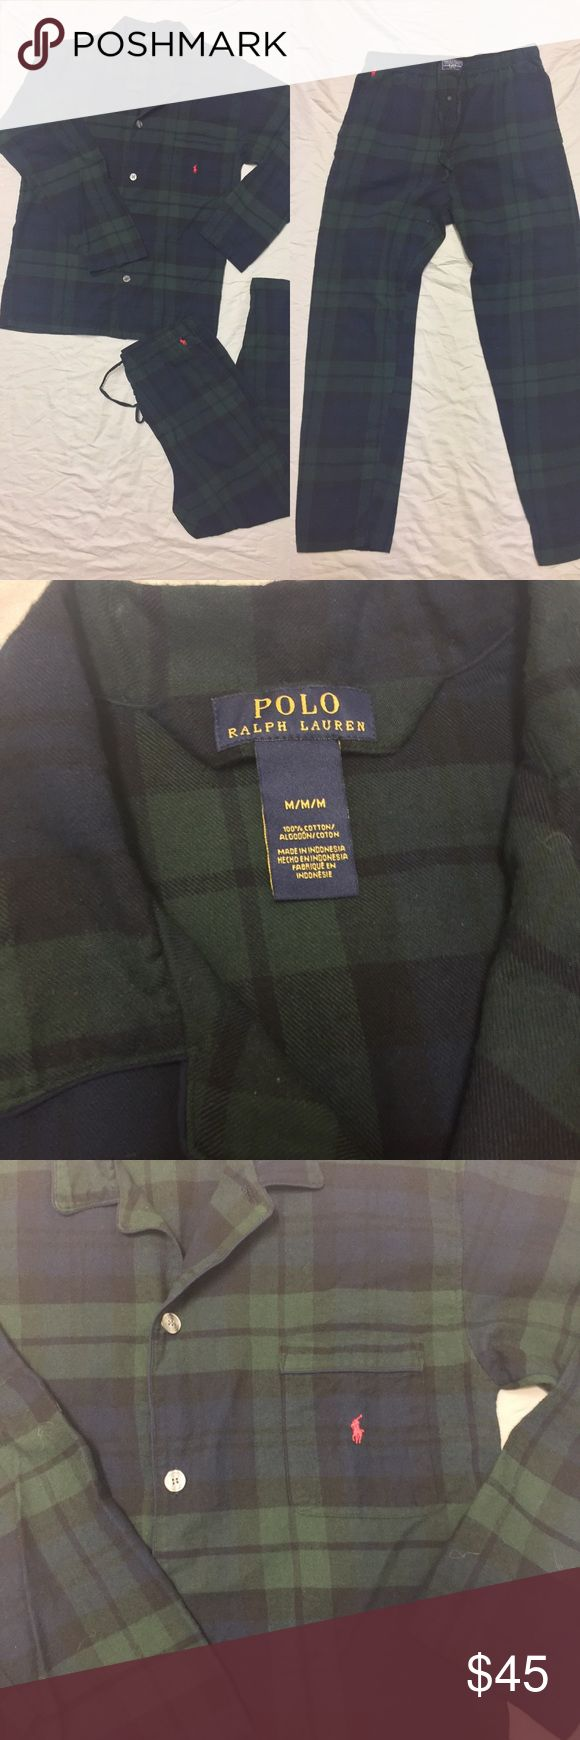 Polo Ralph Lauren plaid pajama set Excellent condition. Very comfy. I think this is technically a men's set but super cute for girls as well! Pants have pockets! Green and blue plaid with red pony on shirt and pants. These are sold as a set. Polo by Ralph Lauren Intimates & Sleepwear Pajamas